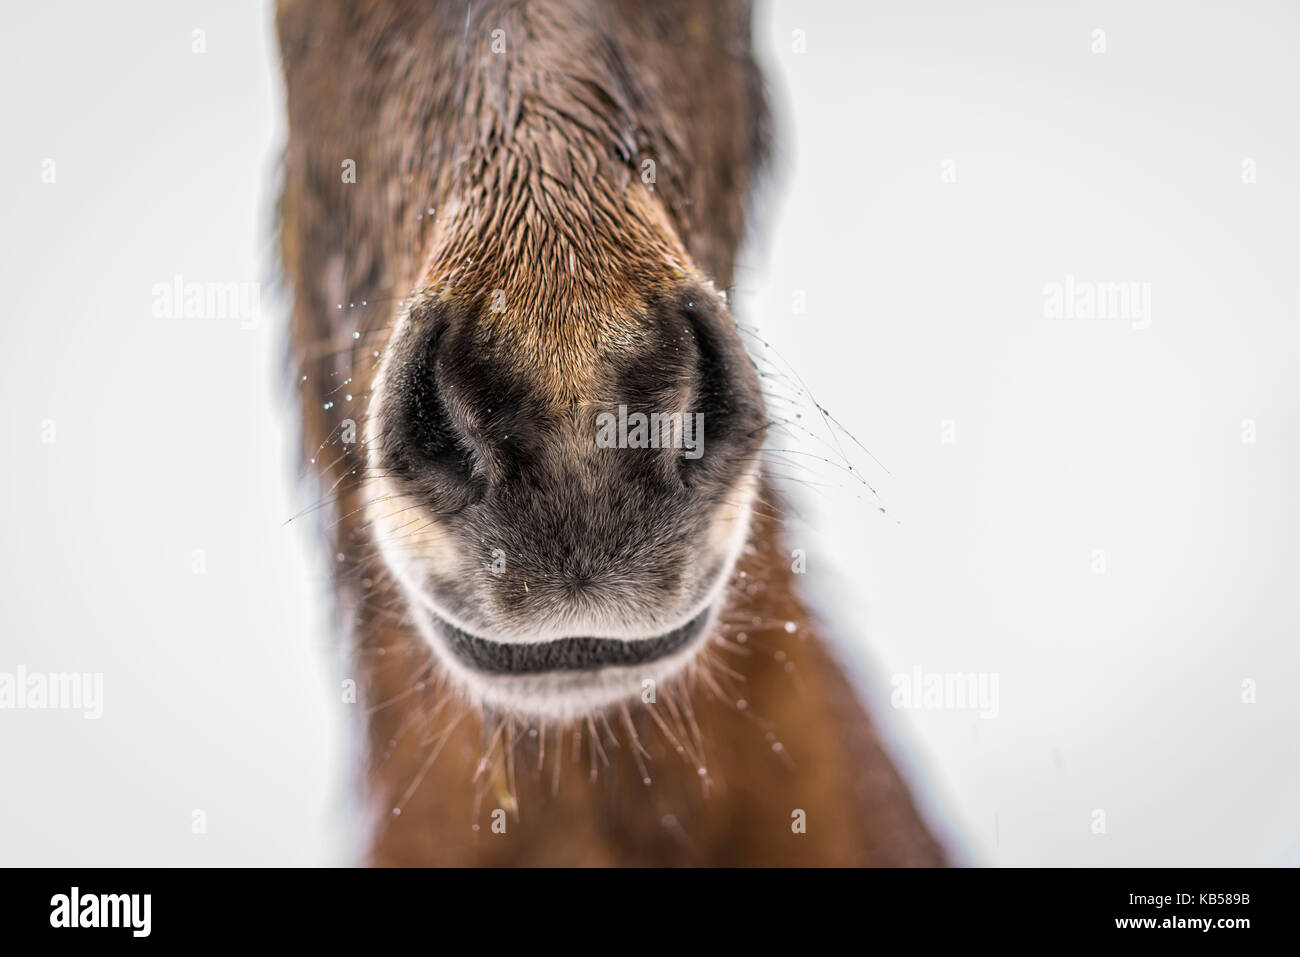 Icelandic Horse in a snowstorm, Iceland - Stock Image